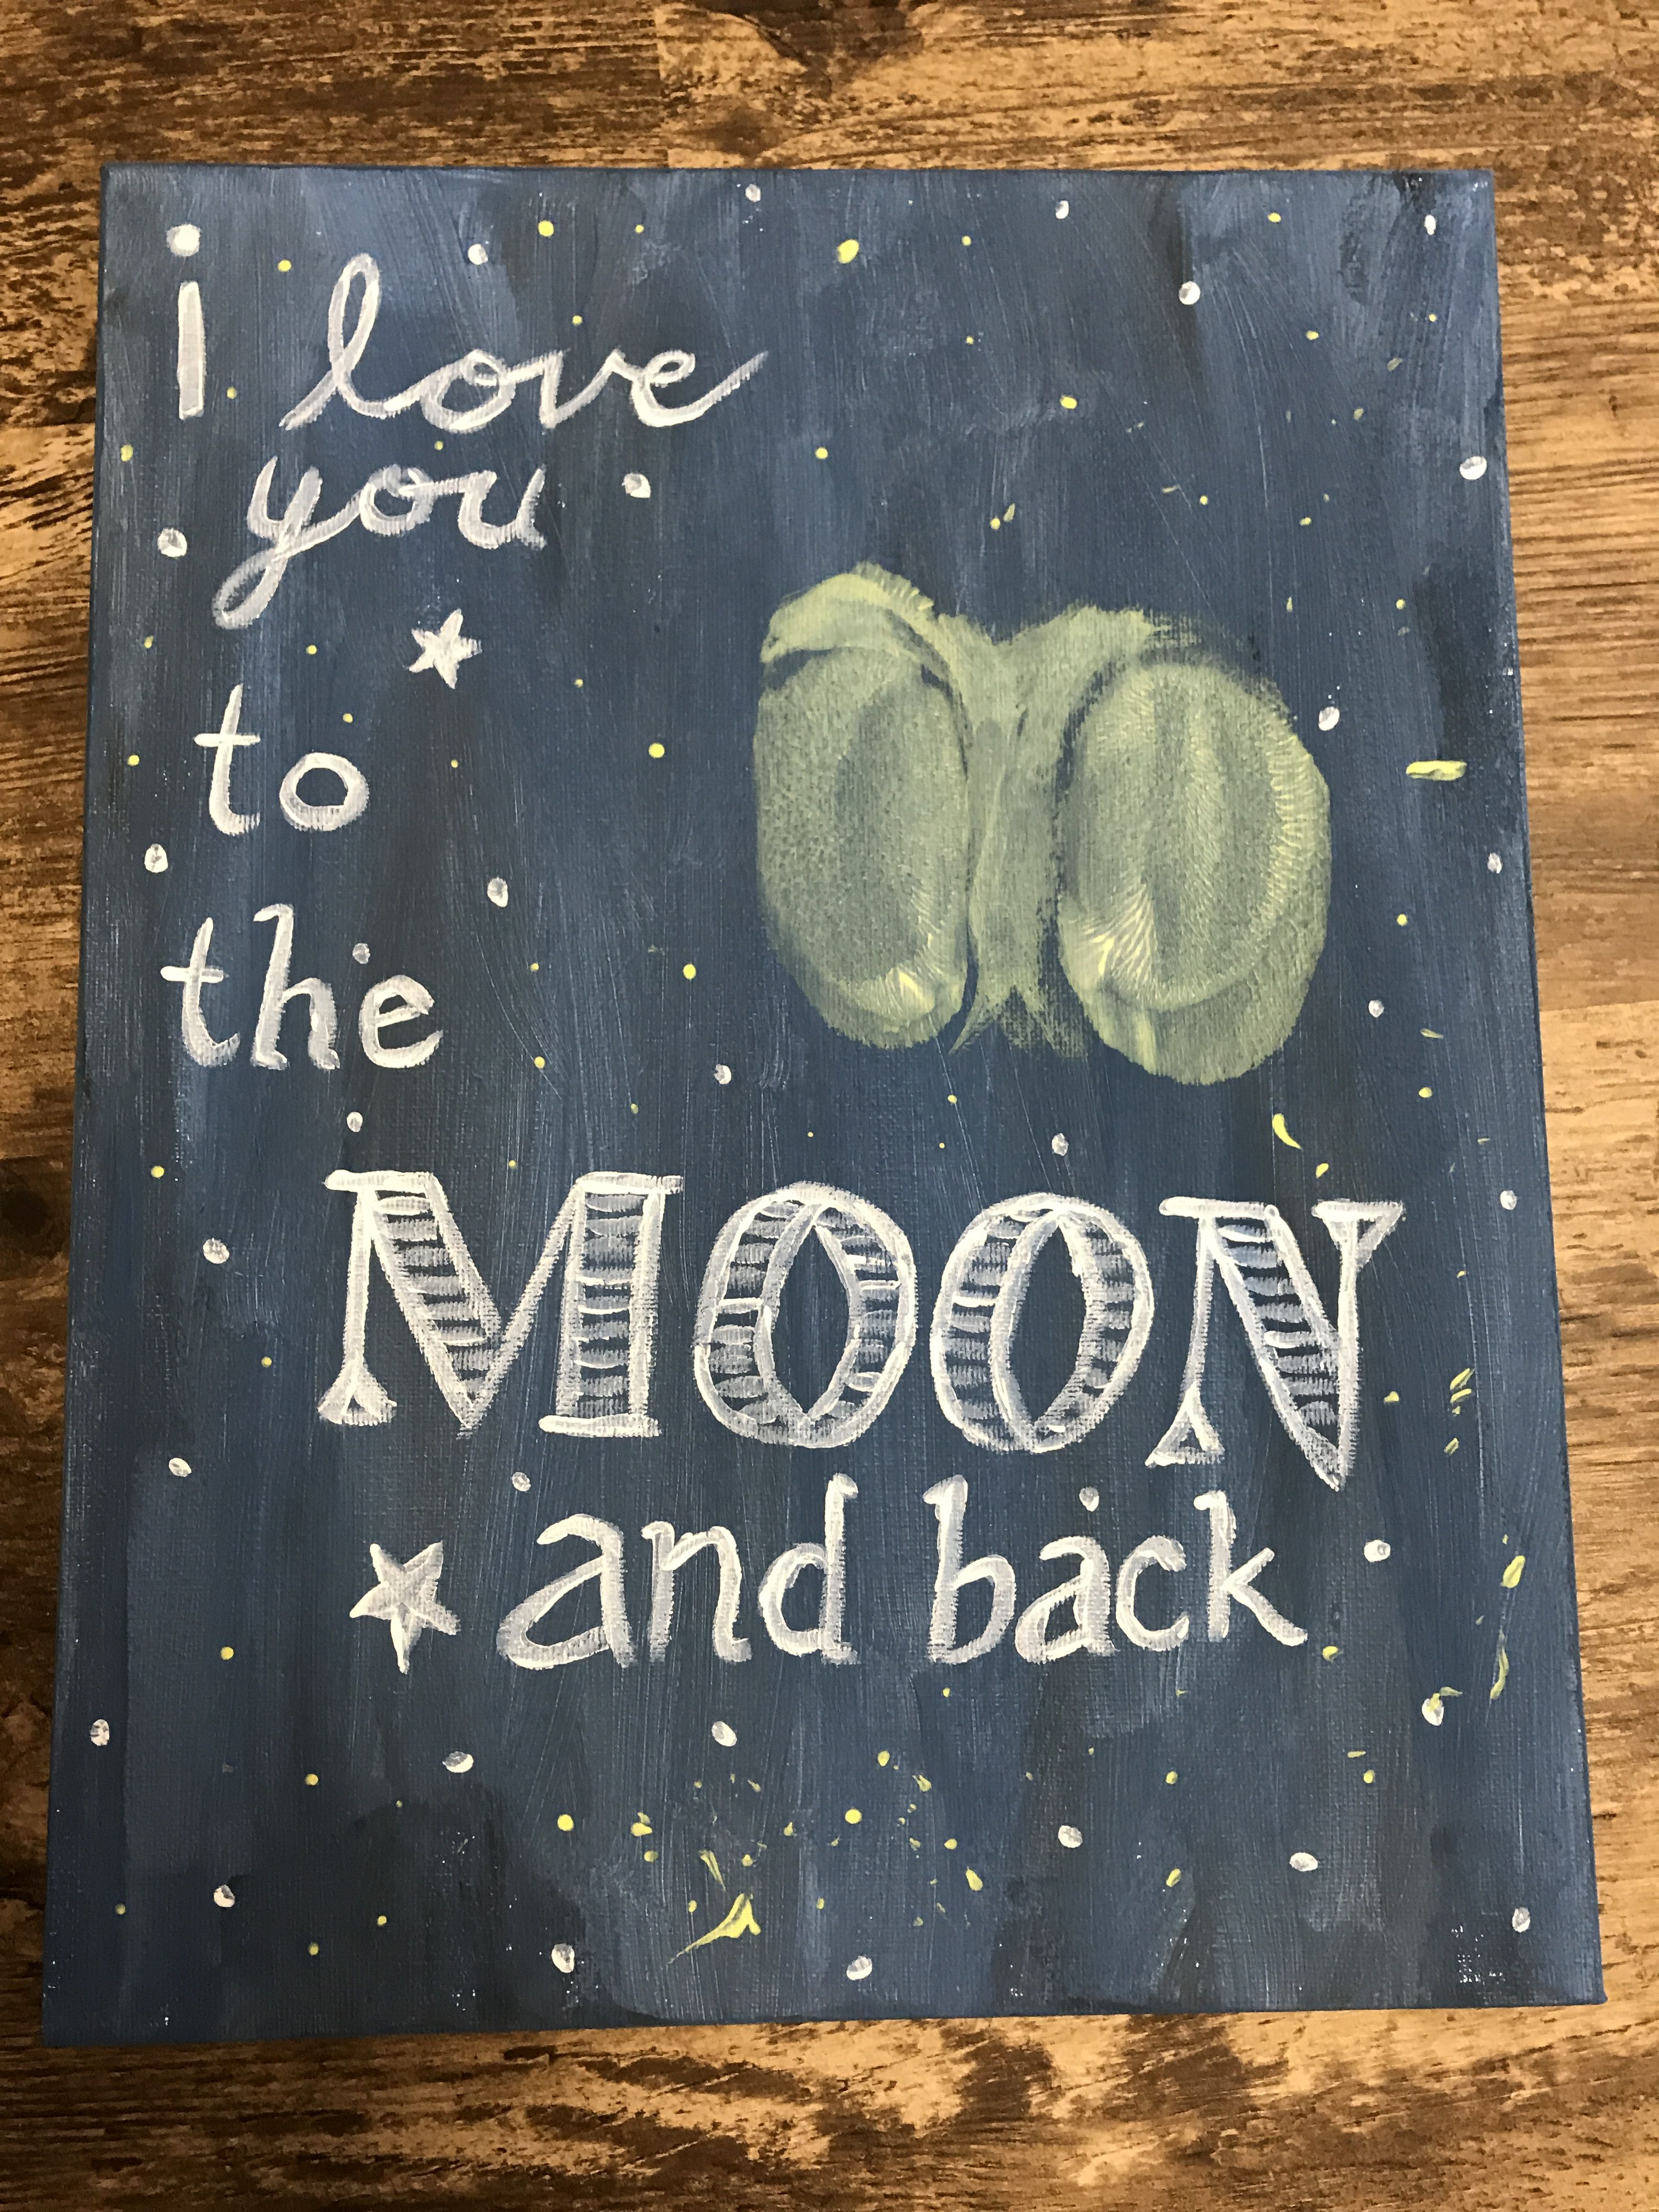 painting for father's day - i love you to the moon and back with